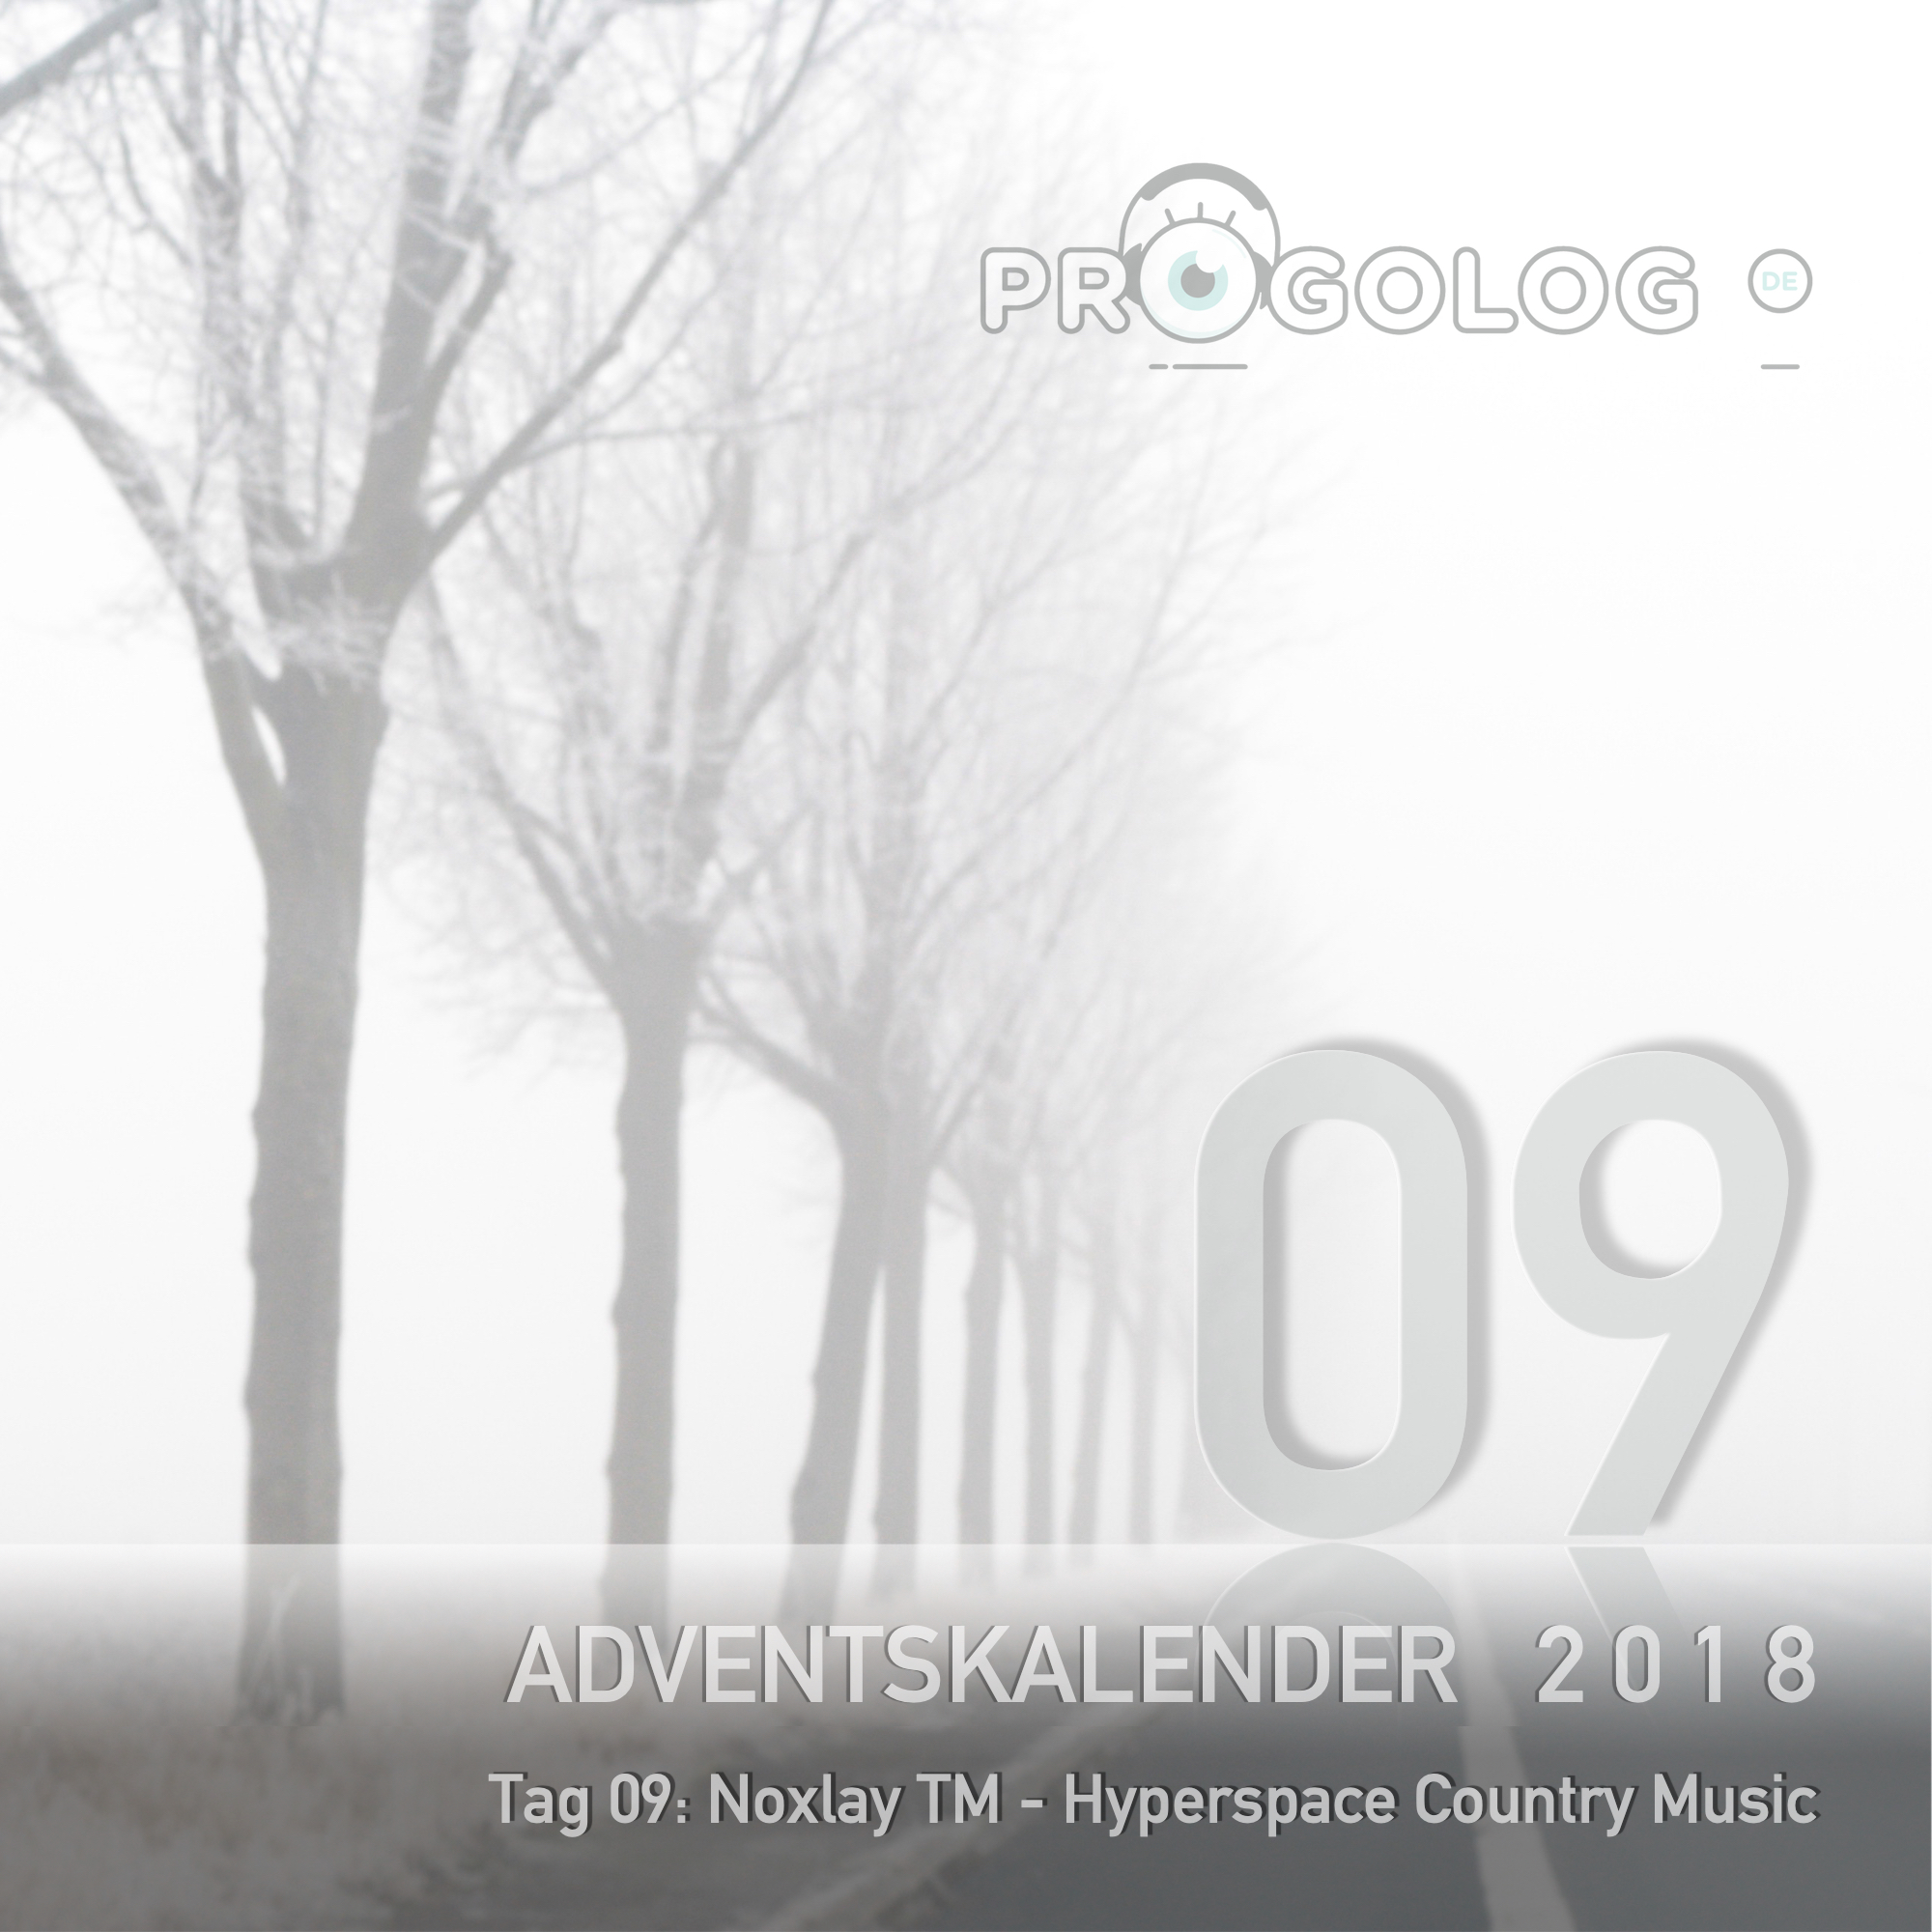 Musik Weihnachtskalender.Adventskalender 2018 Tag 09 Noxlay Tm Hyperspace Country Music